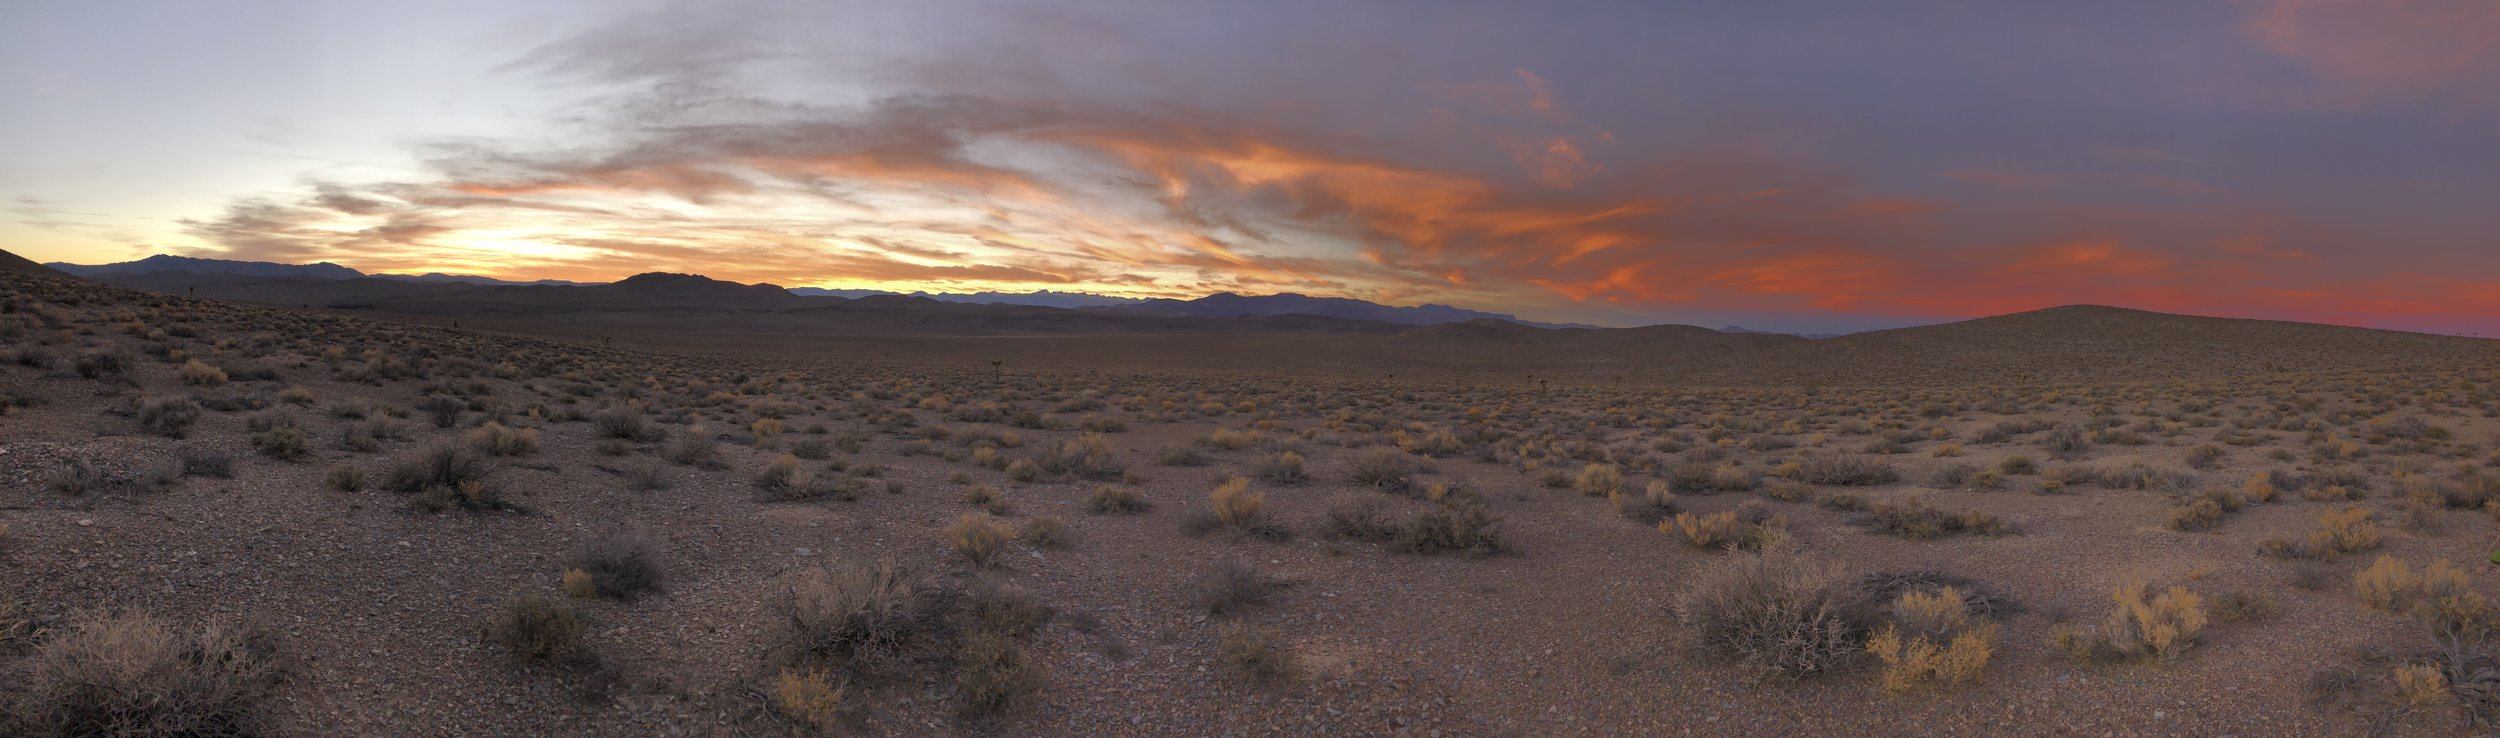 Sunset just outside Death Valley National Park, California.